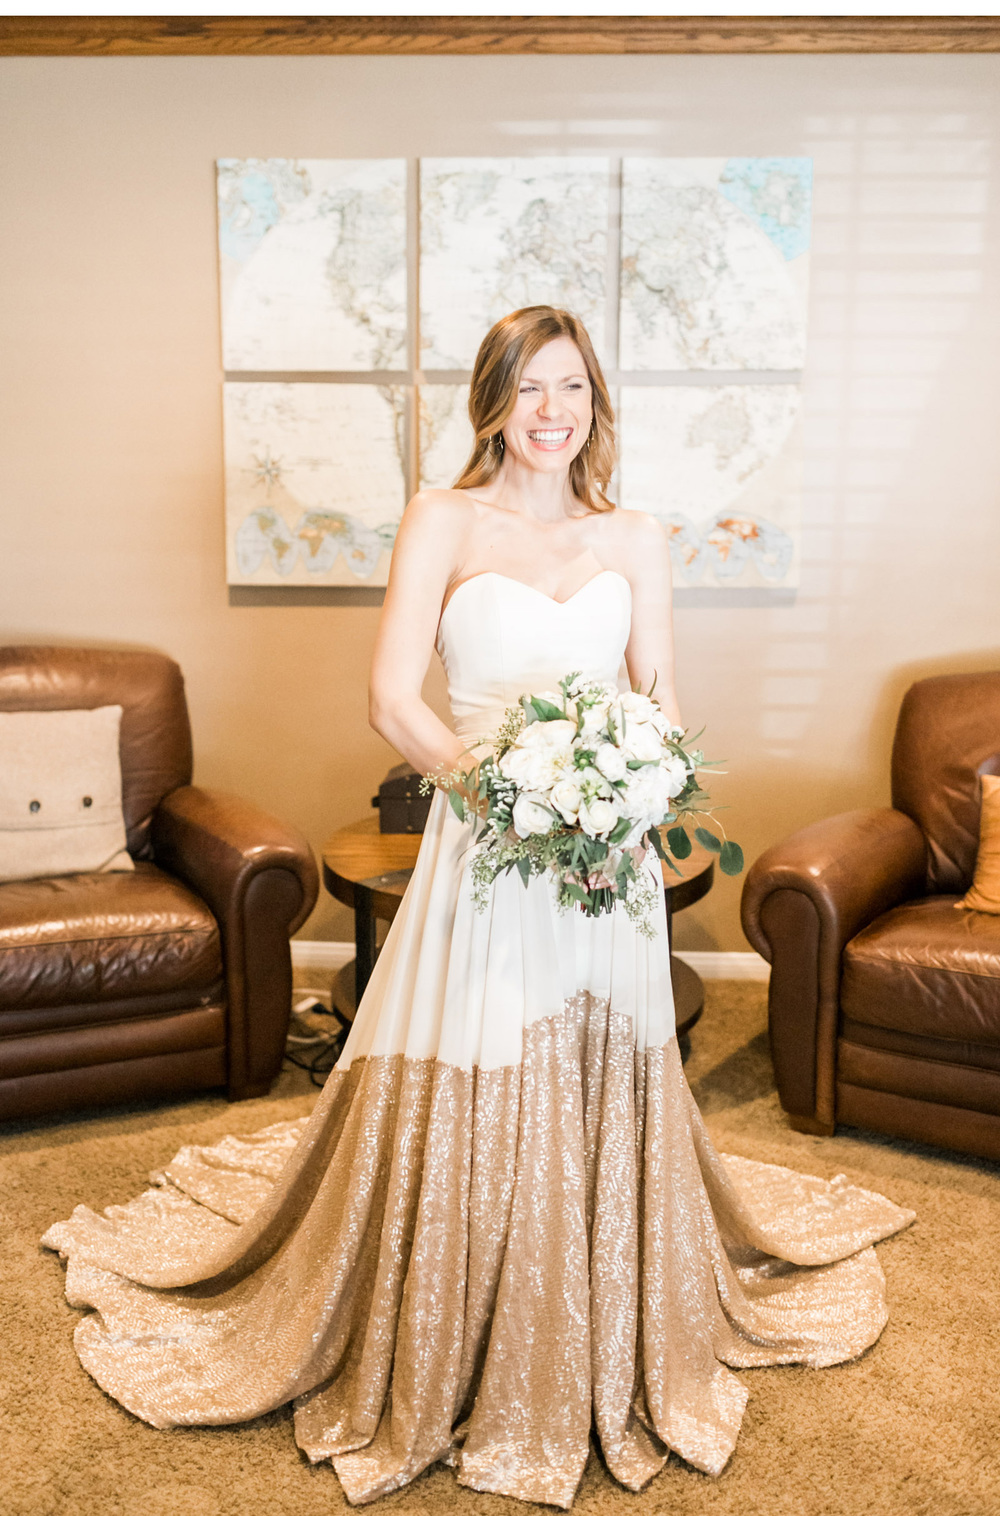 Library-Wedding-Natalie-Schutt-Photography_01.jpg